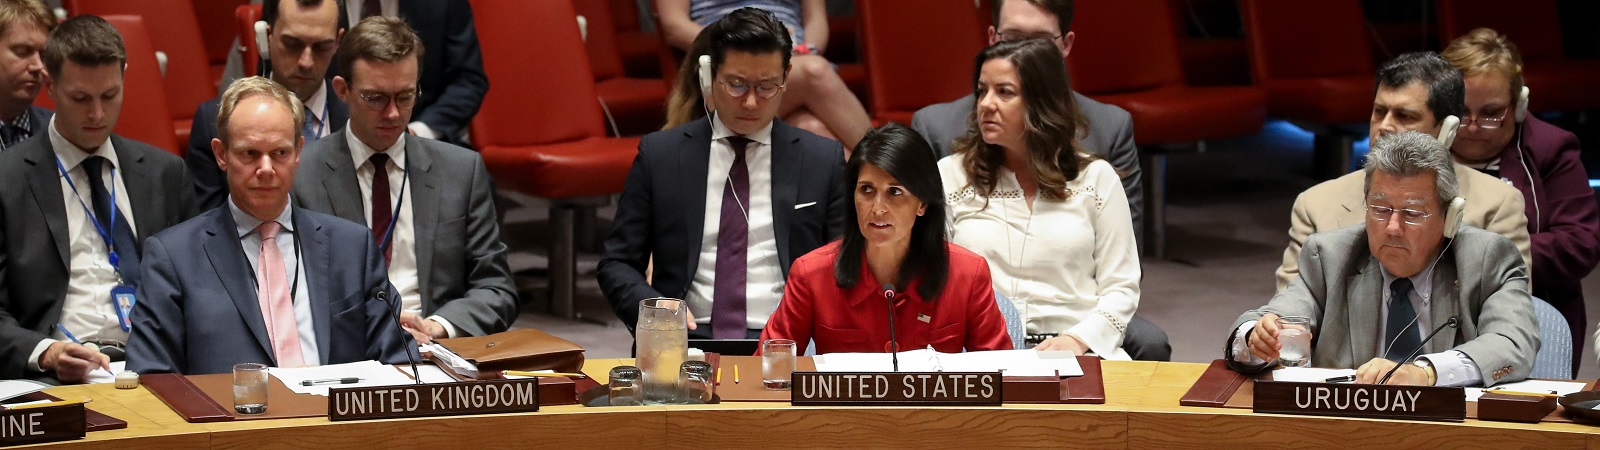 Nikki Haley, US ambassador to the United Nations, at the 5 July emergency meeting of the UN Security Council (Photo: Drew Angerer/Getty Images)